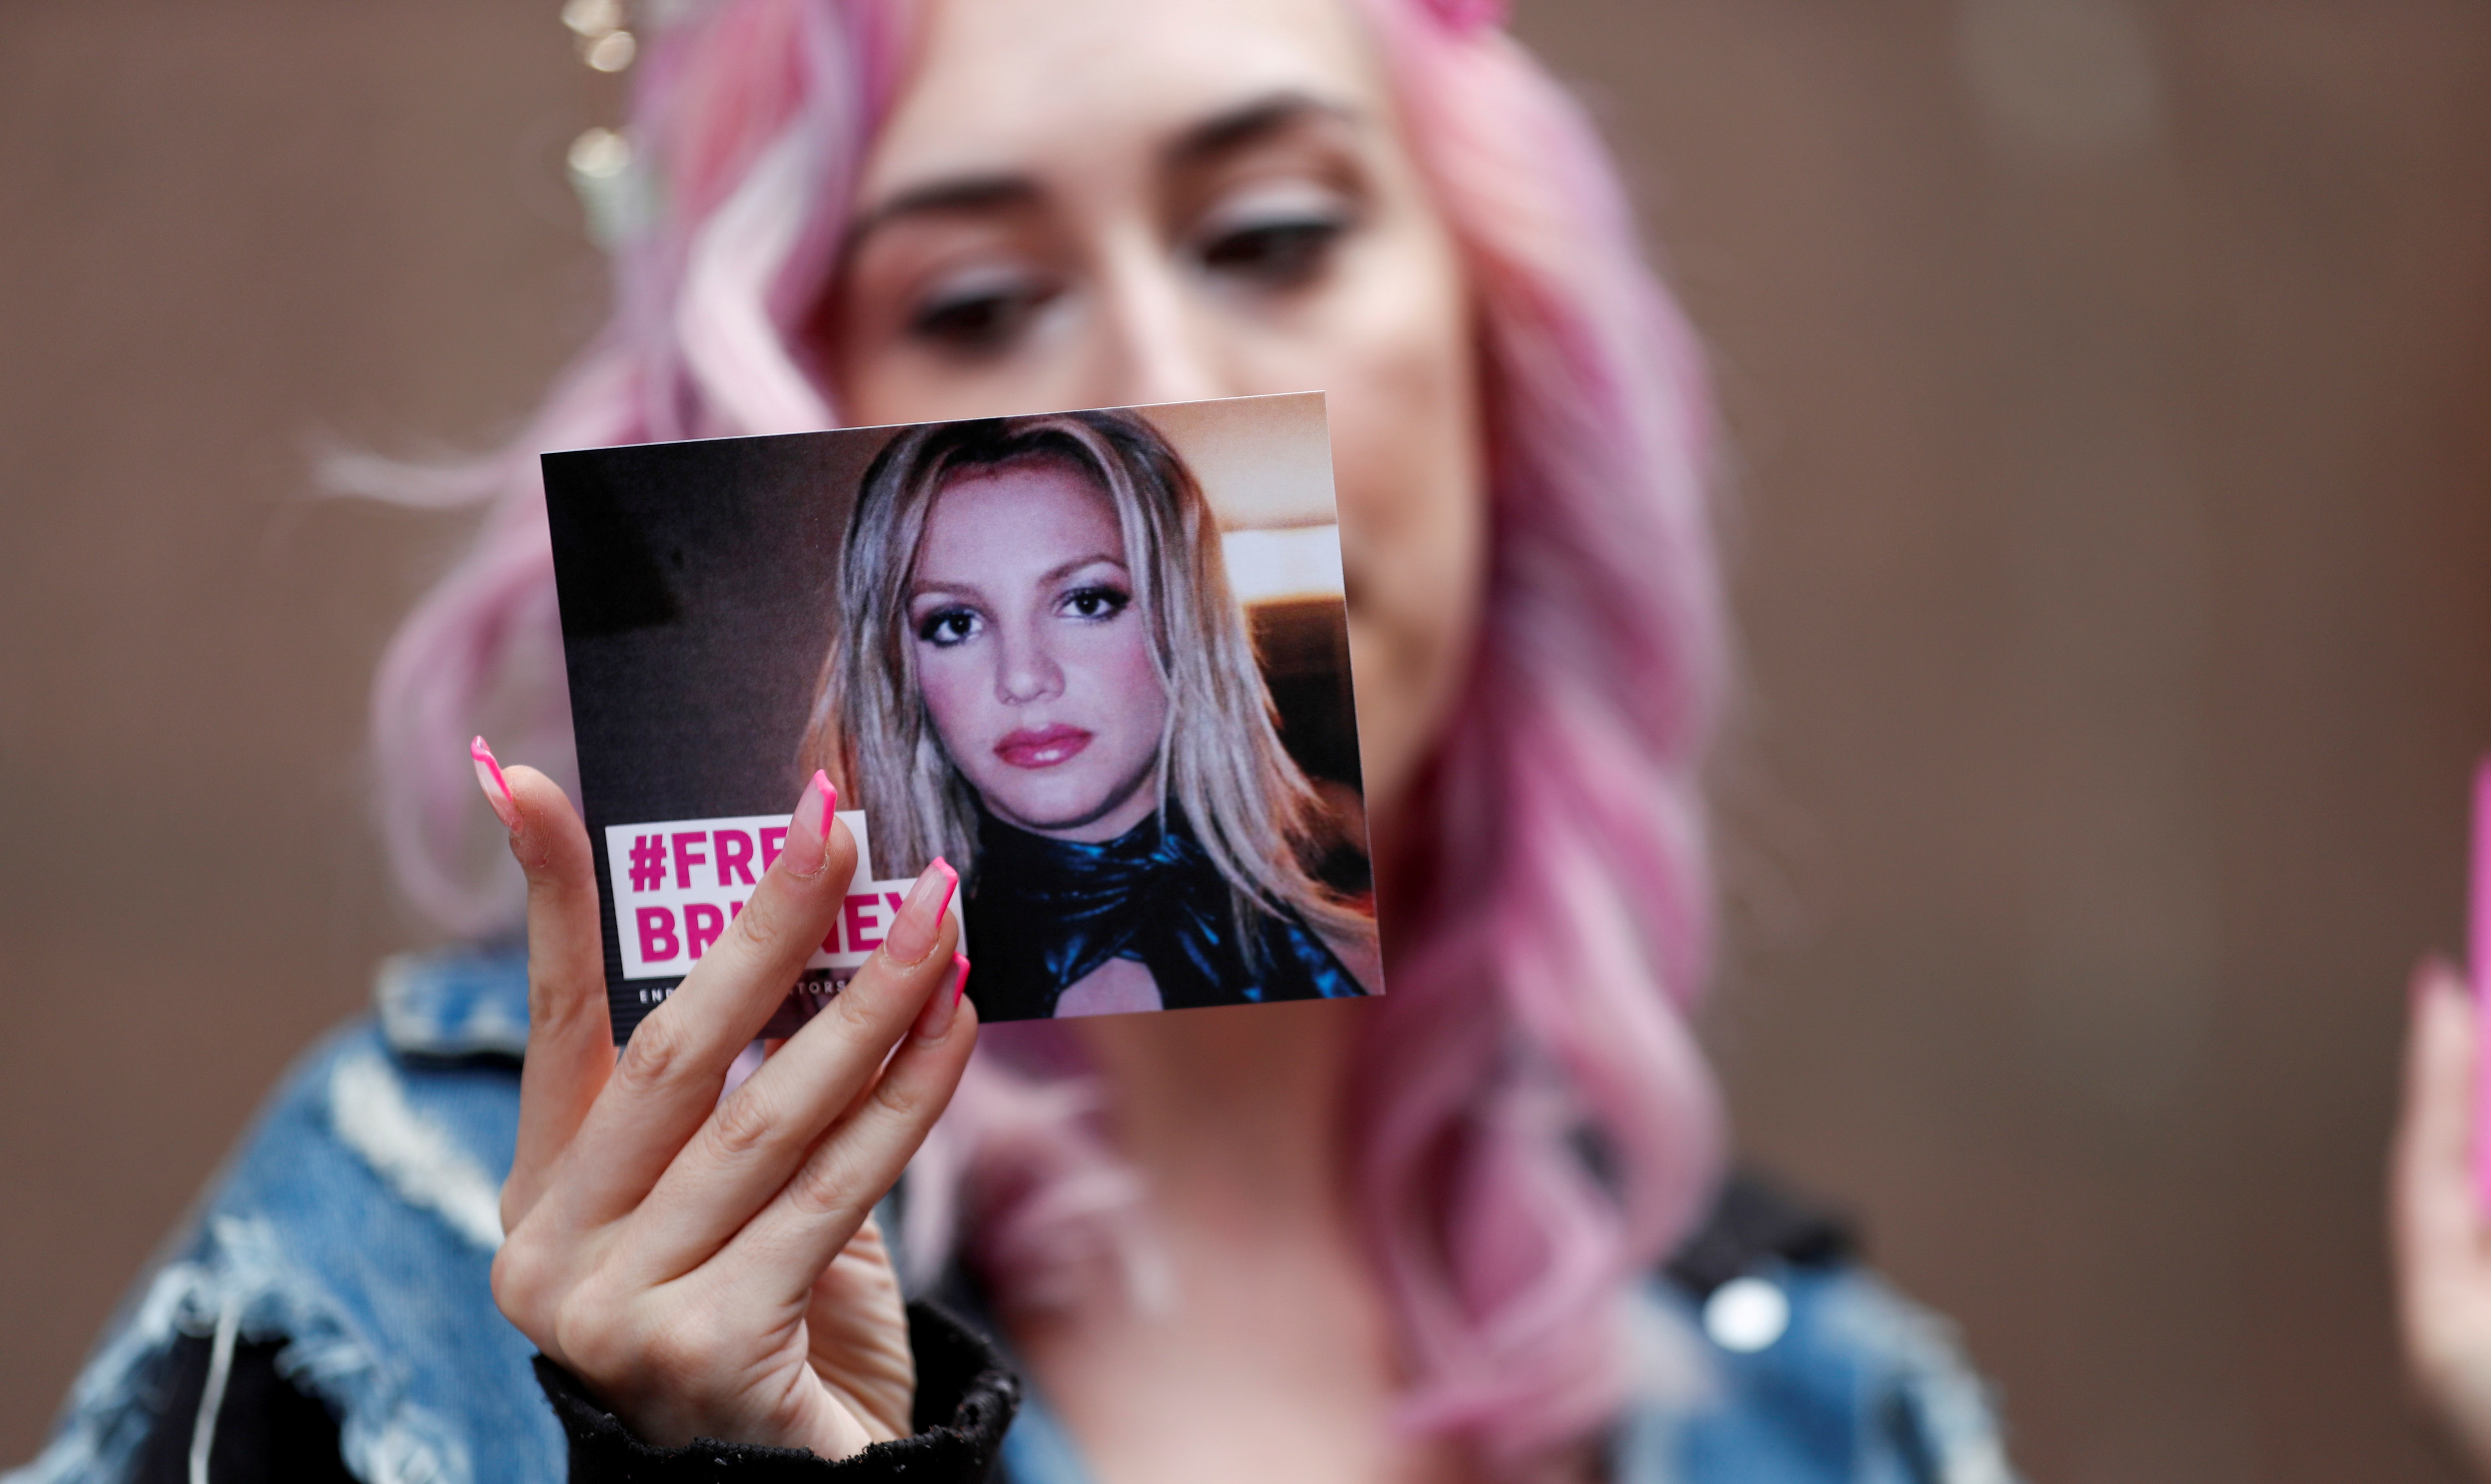 Supporter of pop star Britney Spears Melanie Mandarano holds a postcard on the day of a conservatorship case hearing at Stanley Mosk Courthouse in Los Angeles, California, U.S., July 26, 2021.  REUTERS/Mario Anzuoni